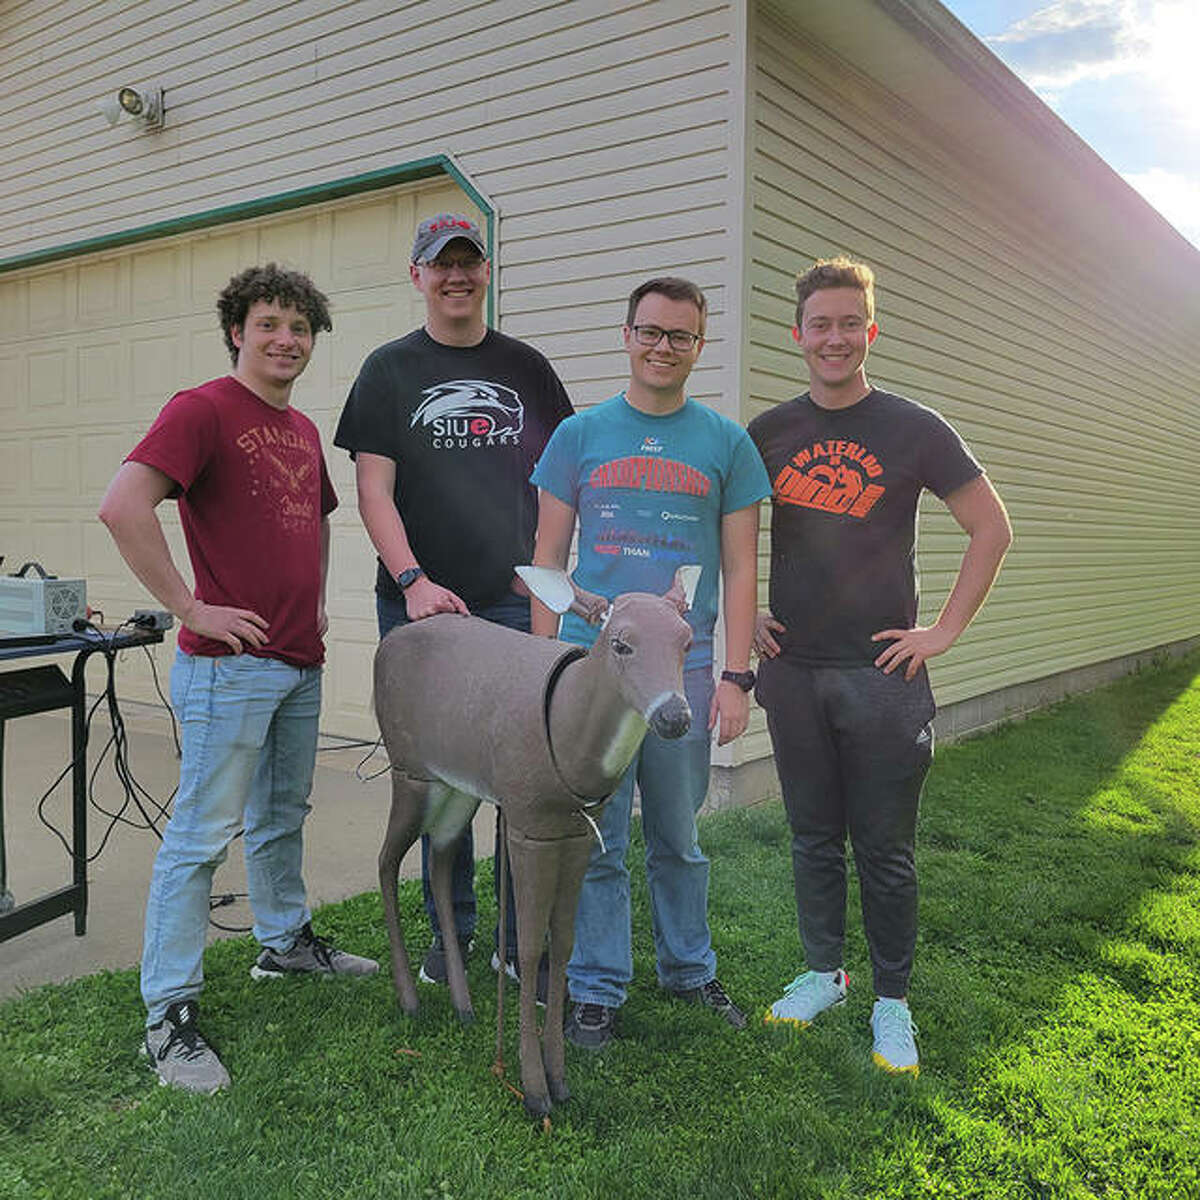 The BambAI team, from left, of Nathan Medsker, Zach Pappas, Joe Phillips and Tim Nodorft won first place in TheOther40 business plan competition by the Southern Illinois University Edwardsville's School of Business. The team created a remotely controlled animatronic deer decoy that mimics deer behavior.